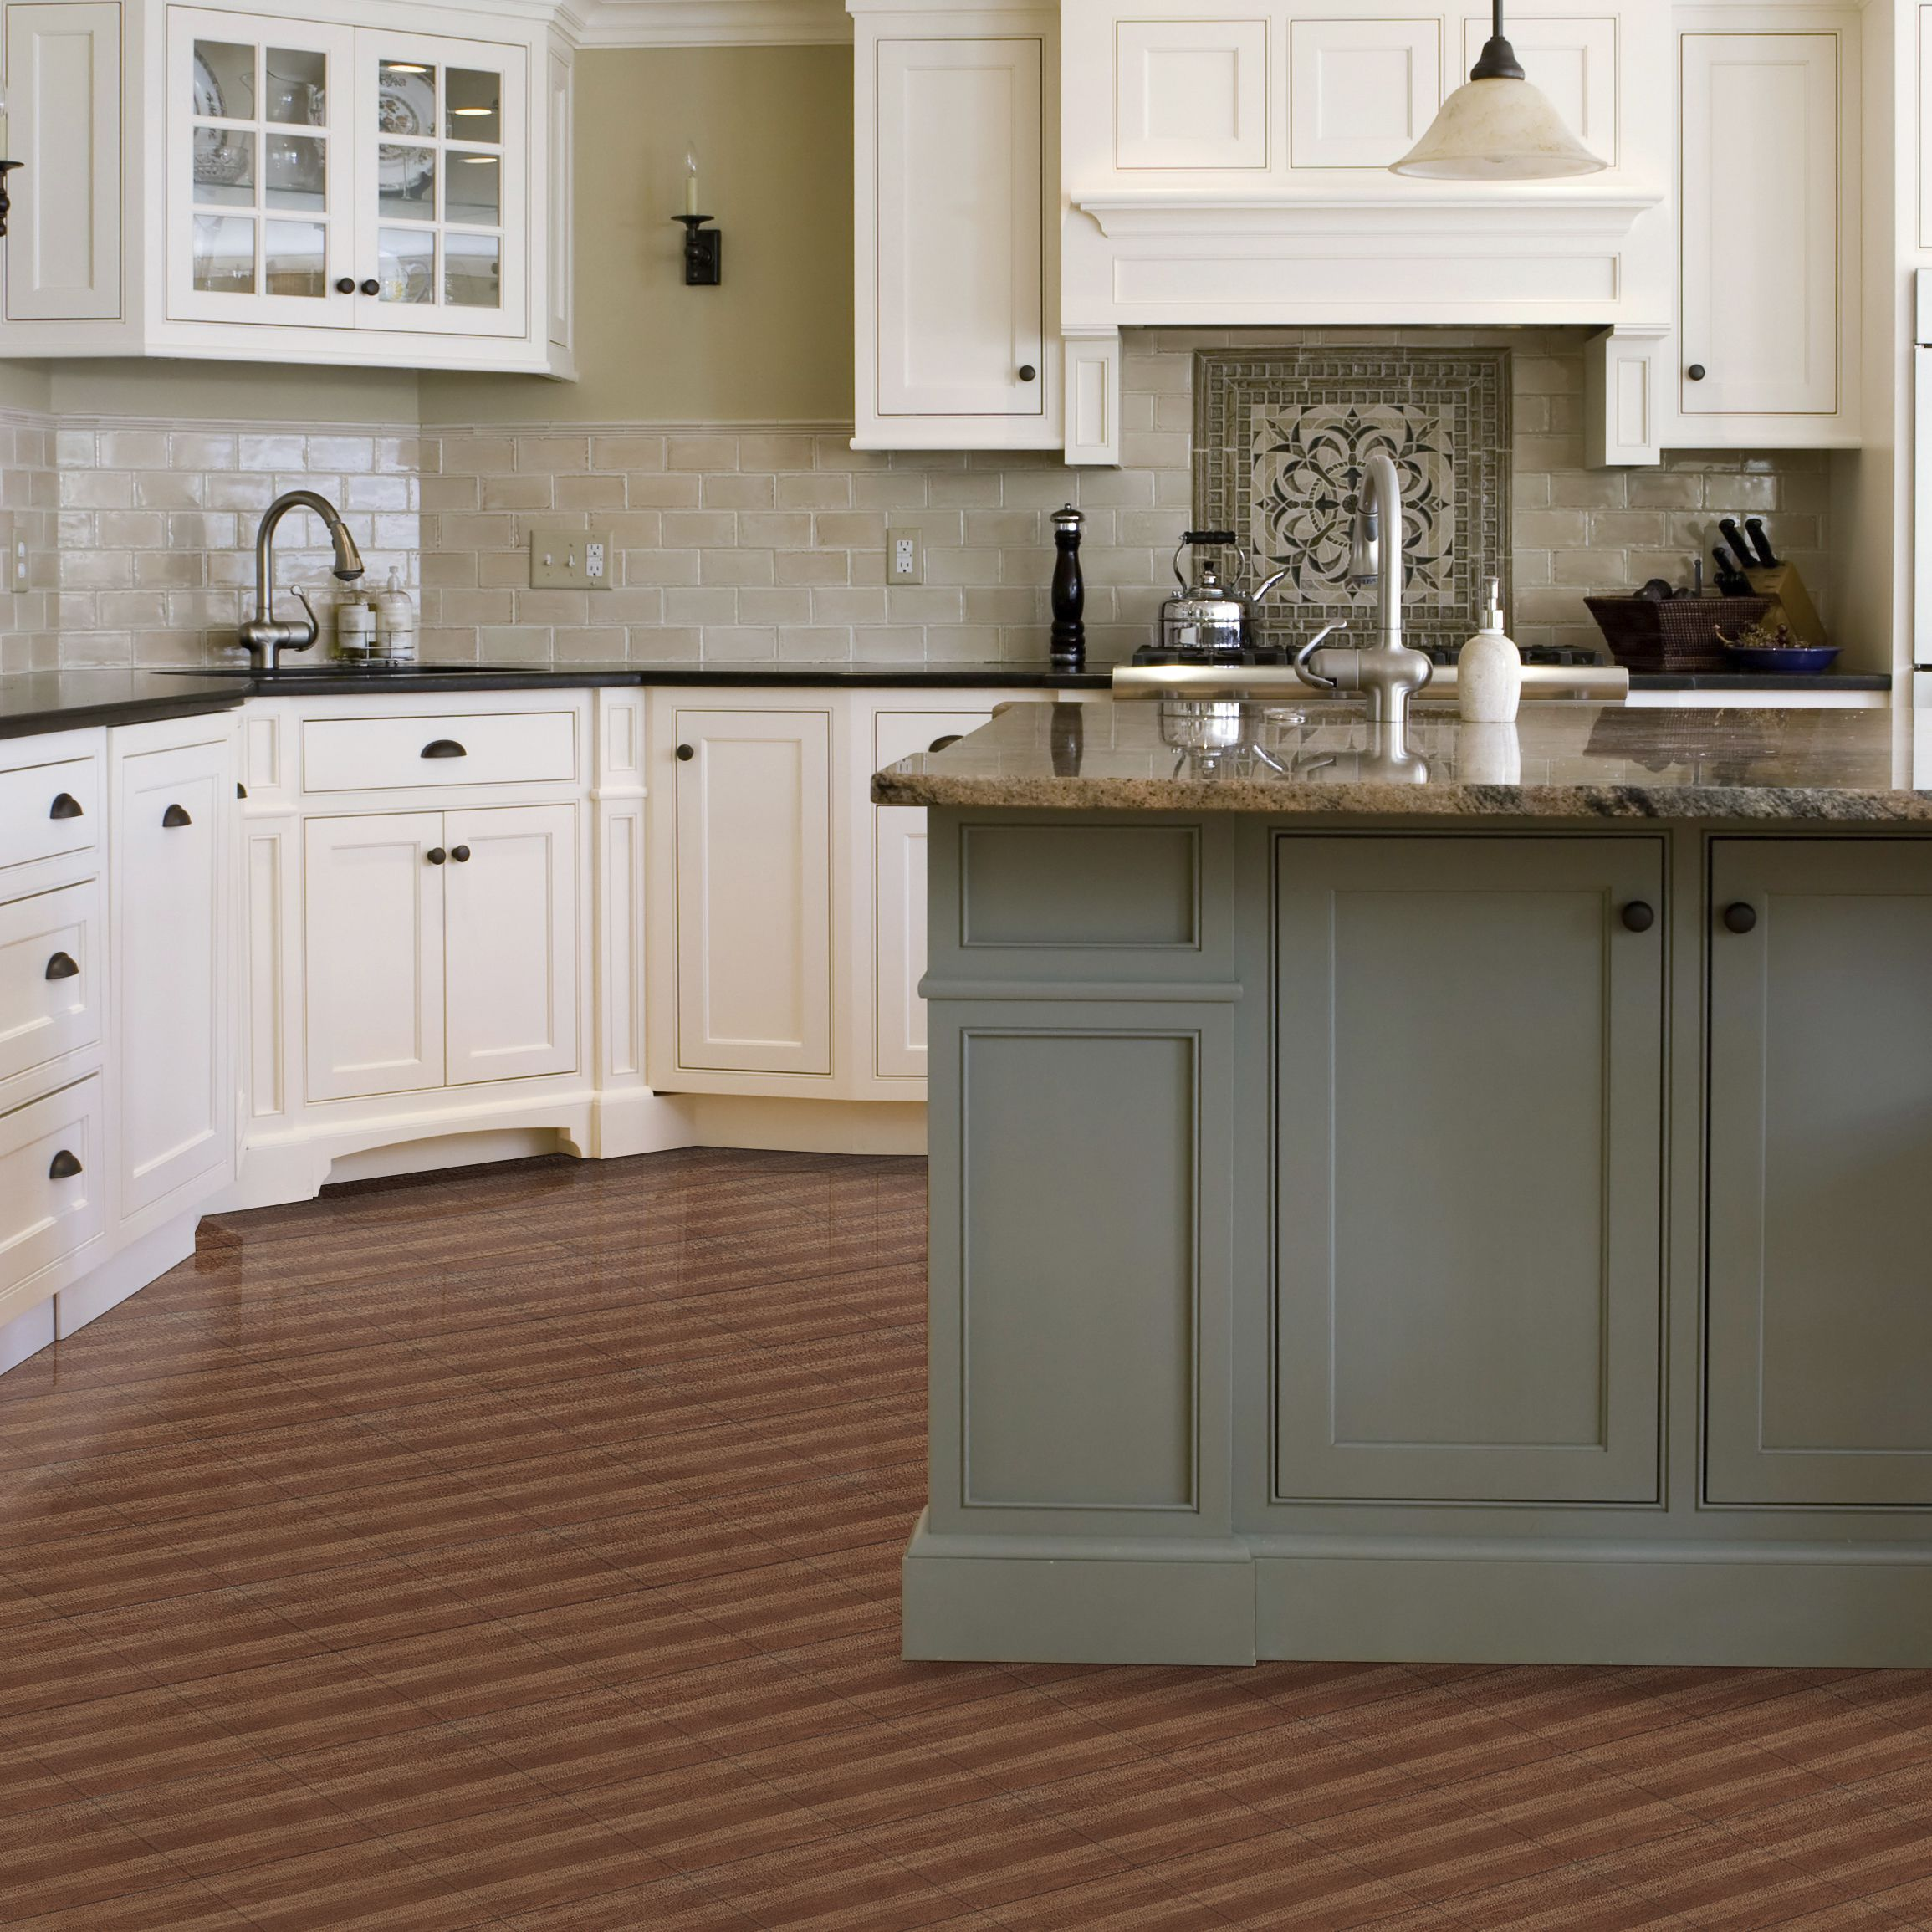 - The 8 Best Peel And Stic Tiles Of 2020